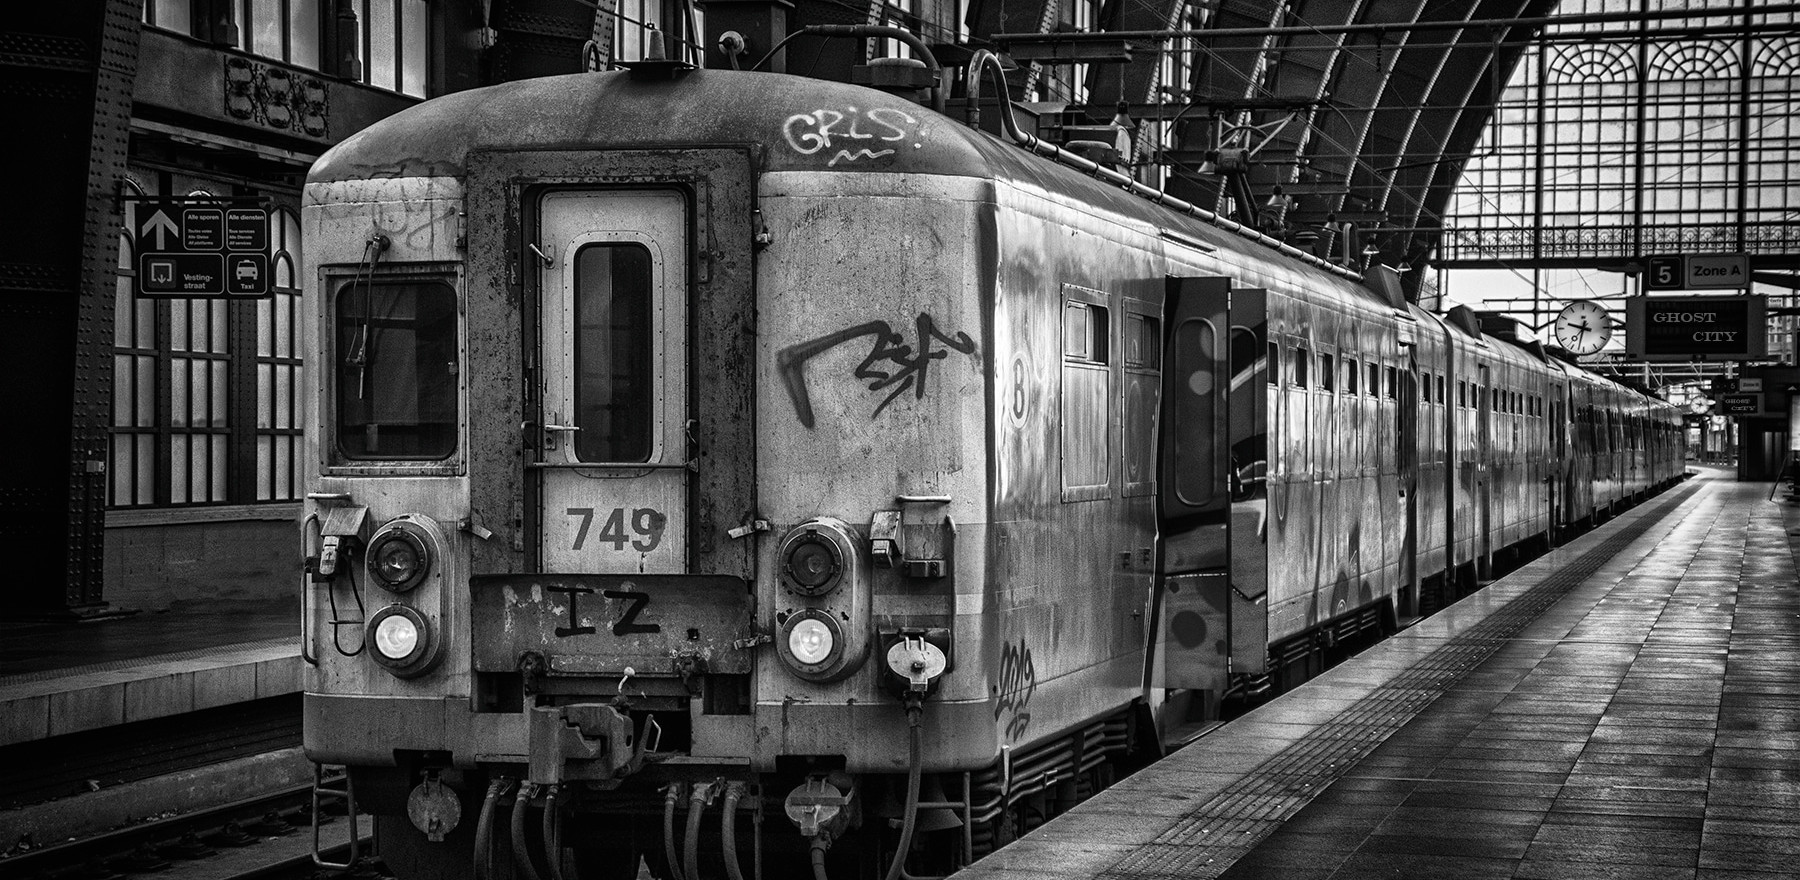 Ghost train to Ghost city